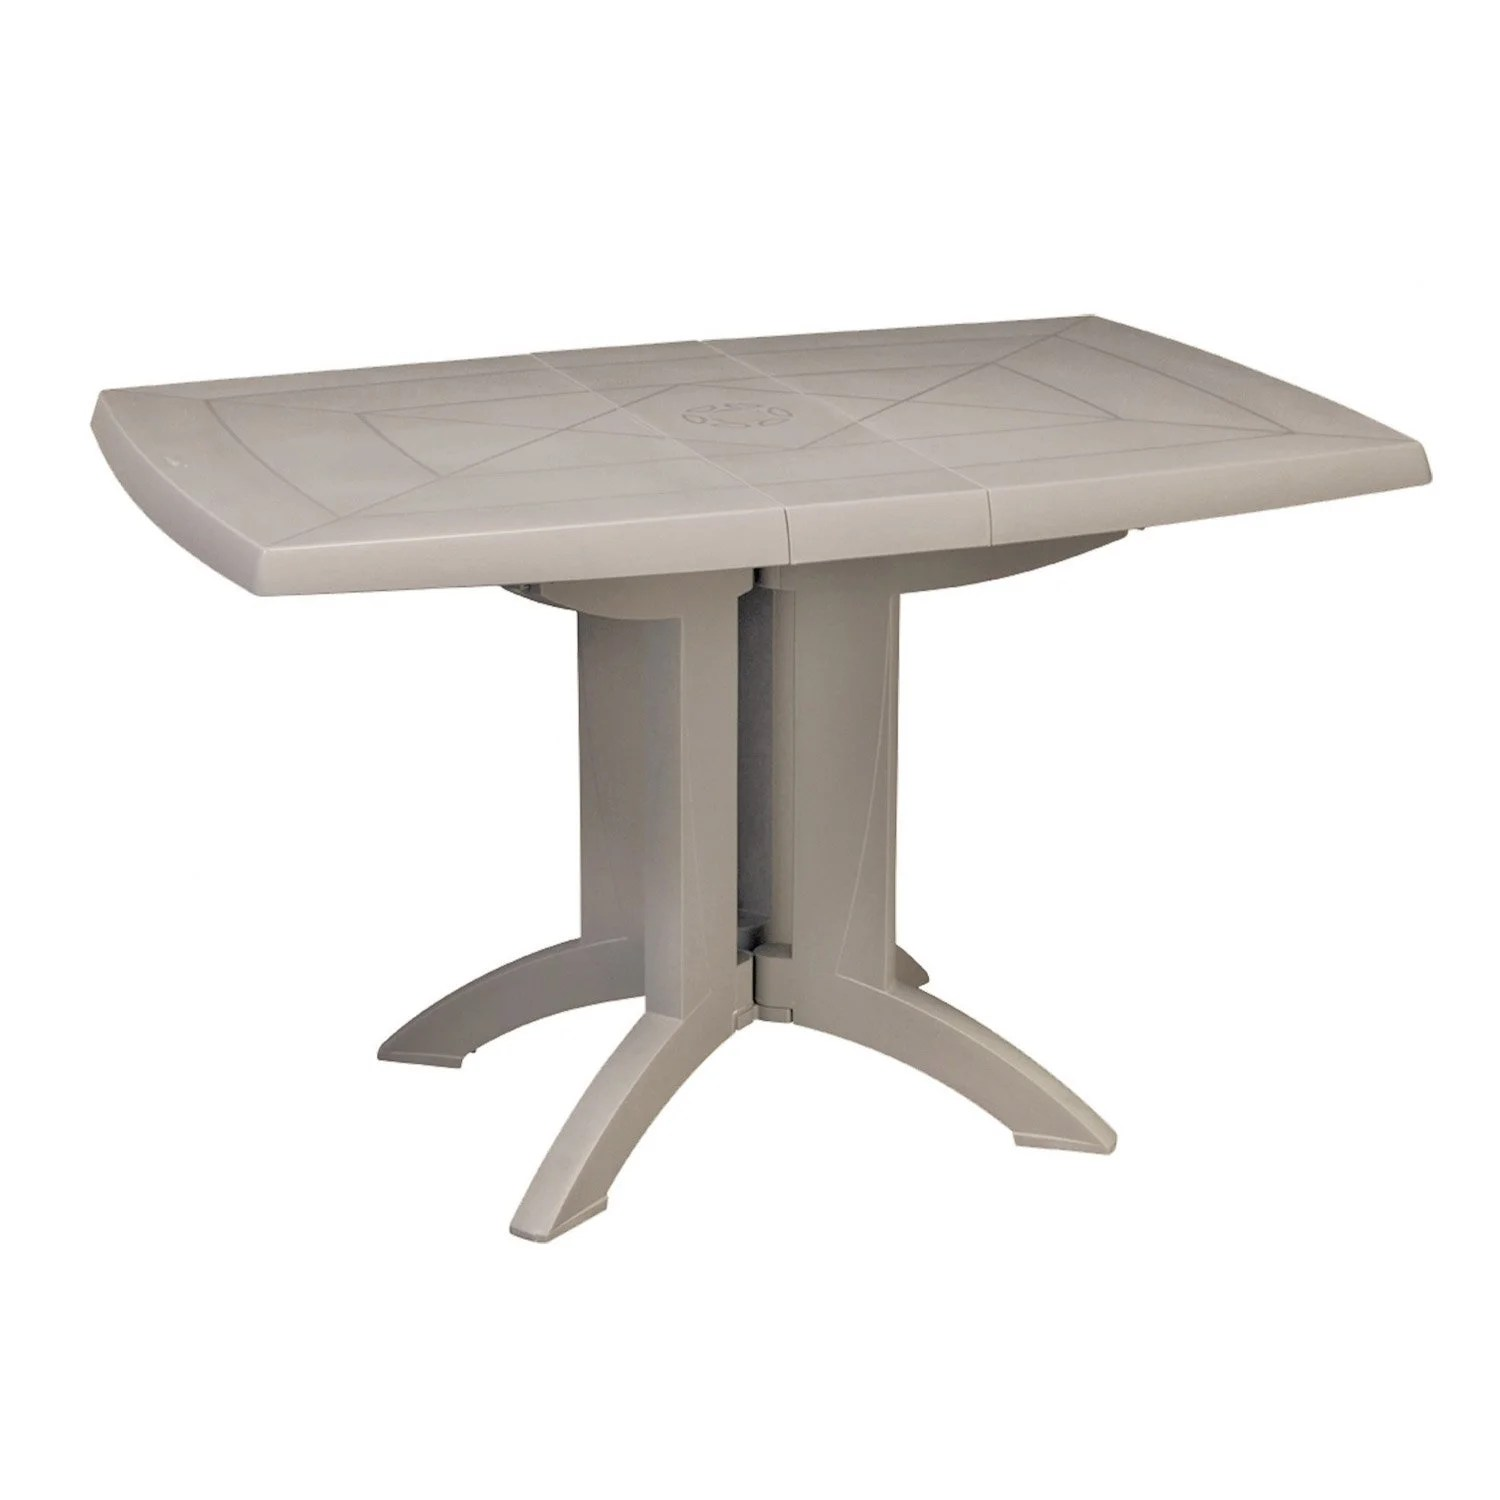 Table Vega Grosfillex Leroy Merlin | Table De Jardin Ronde Table De ...